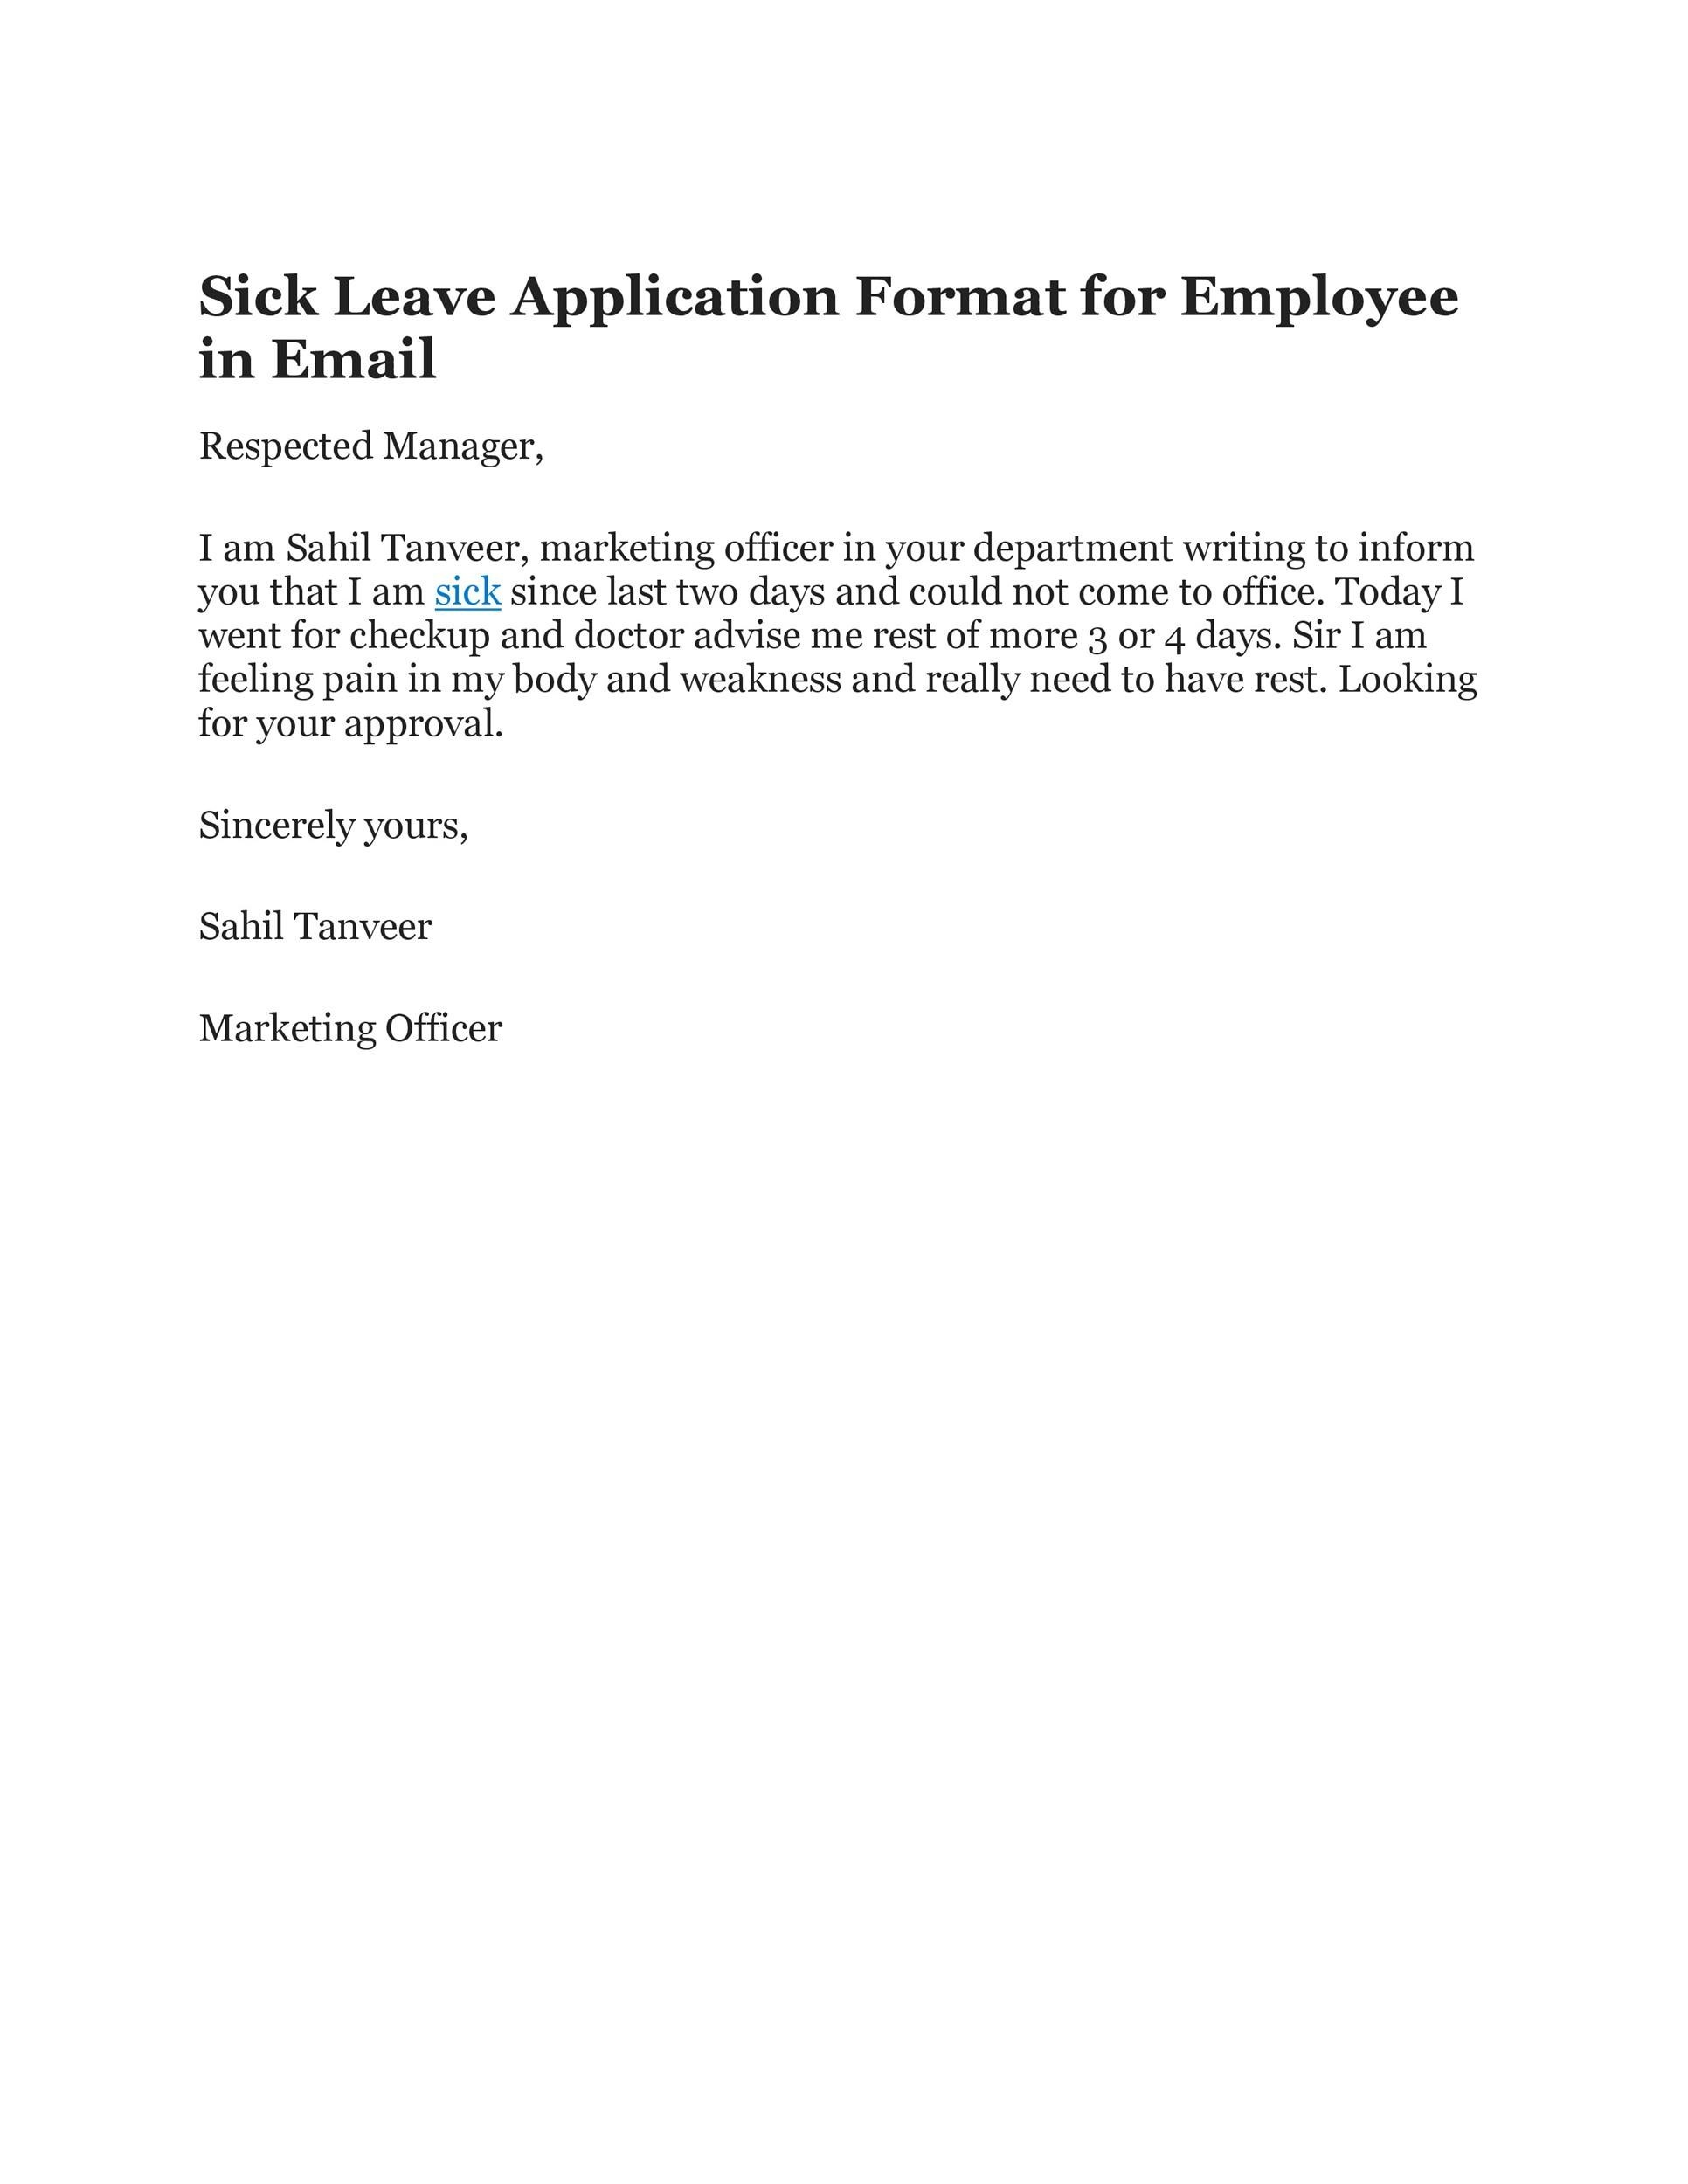 Free sick leave email 35